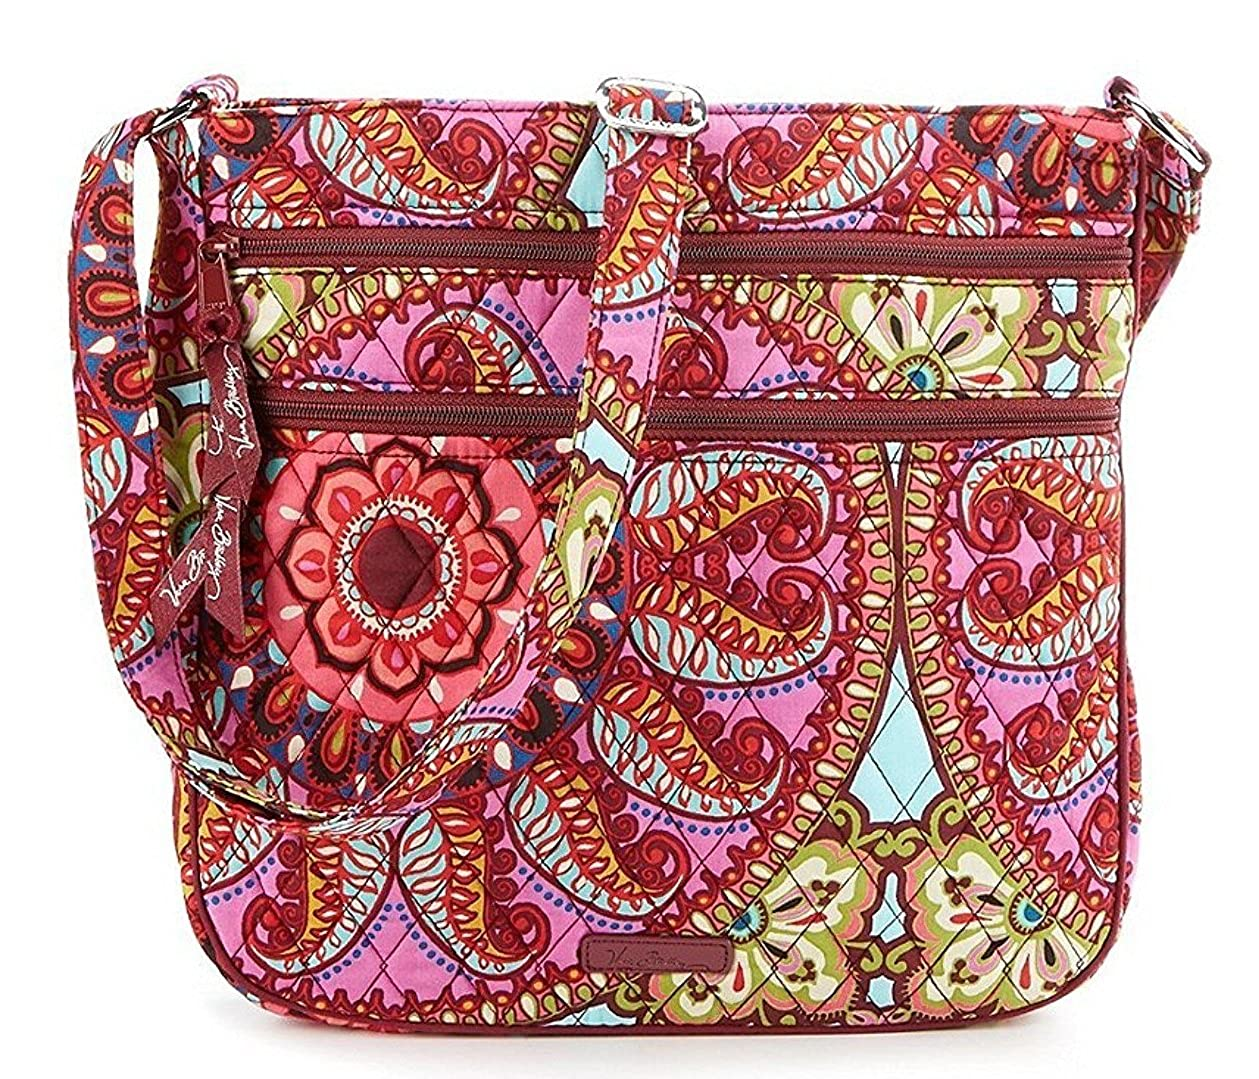 人気沸騰ブラドン Vera Bradley Medallion レディース B07CRN7YW8 Resort Resort Medallion Resort Medallion Medallion, あかい靴:0d50e28f --- efichas.com.br